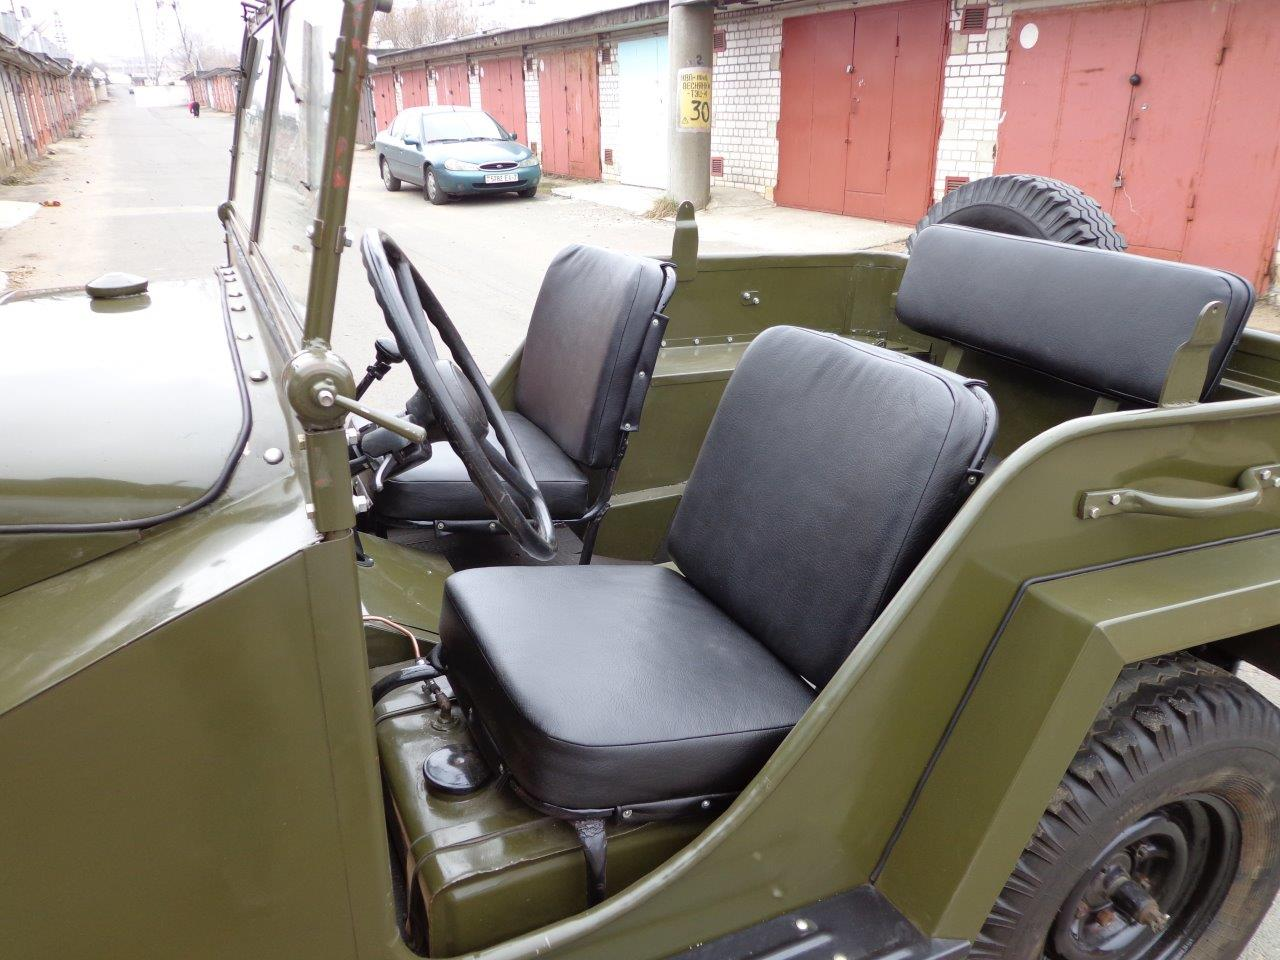 Gaz-67 For Sale Or Trade for MB | eWillys